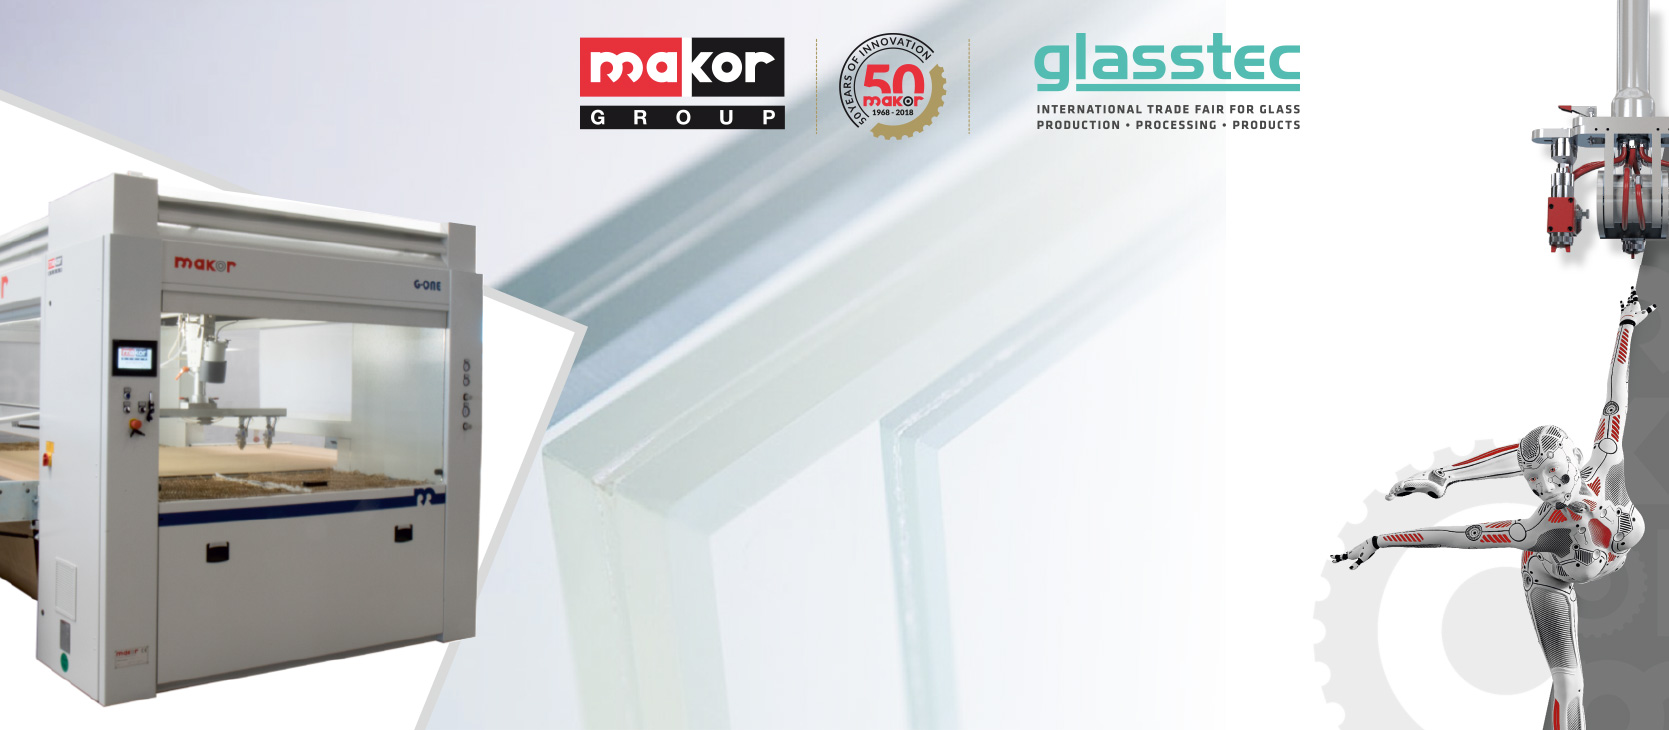 You are kindly invited to see our latest technologies for Glass Painng at Glasstec Trade Fair